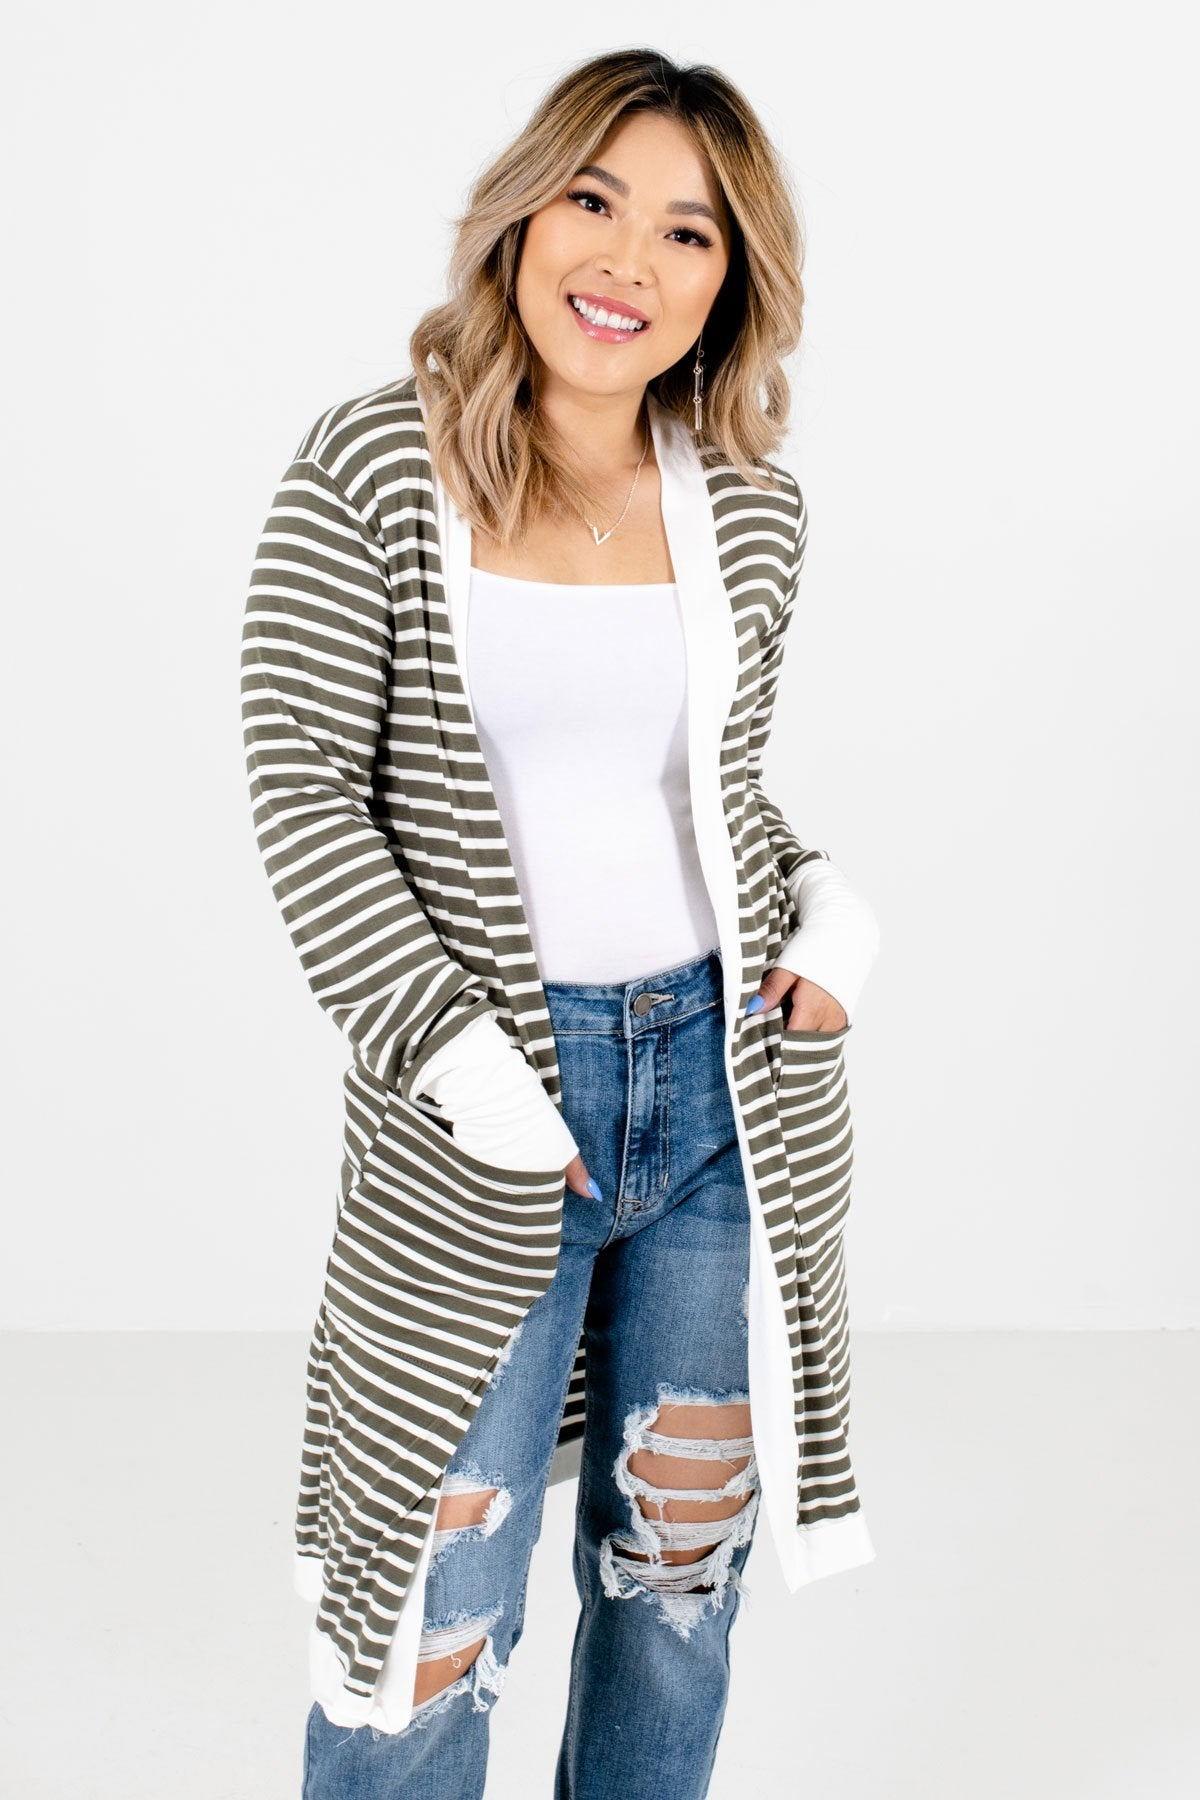 Olive and White Striped Pattern Boutique Cardigans for Women